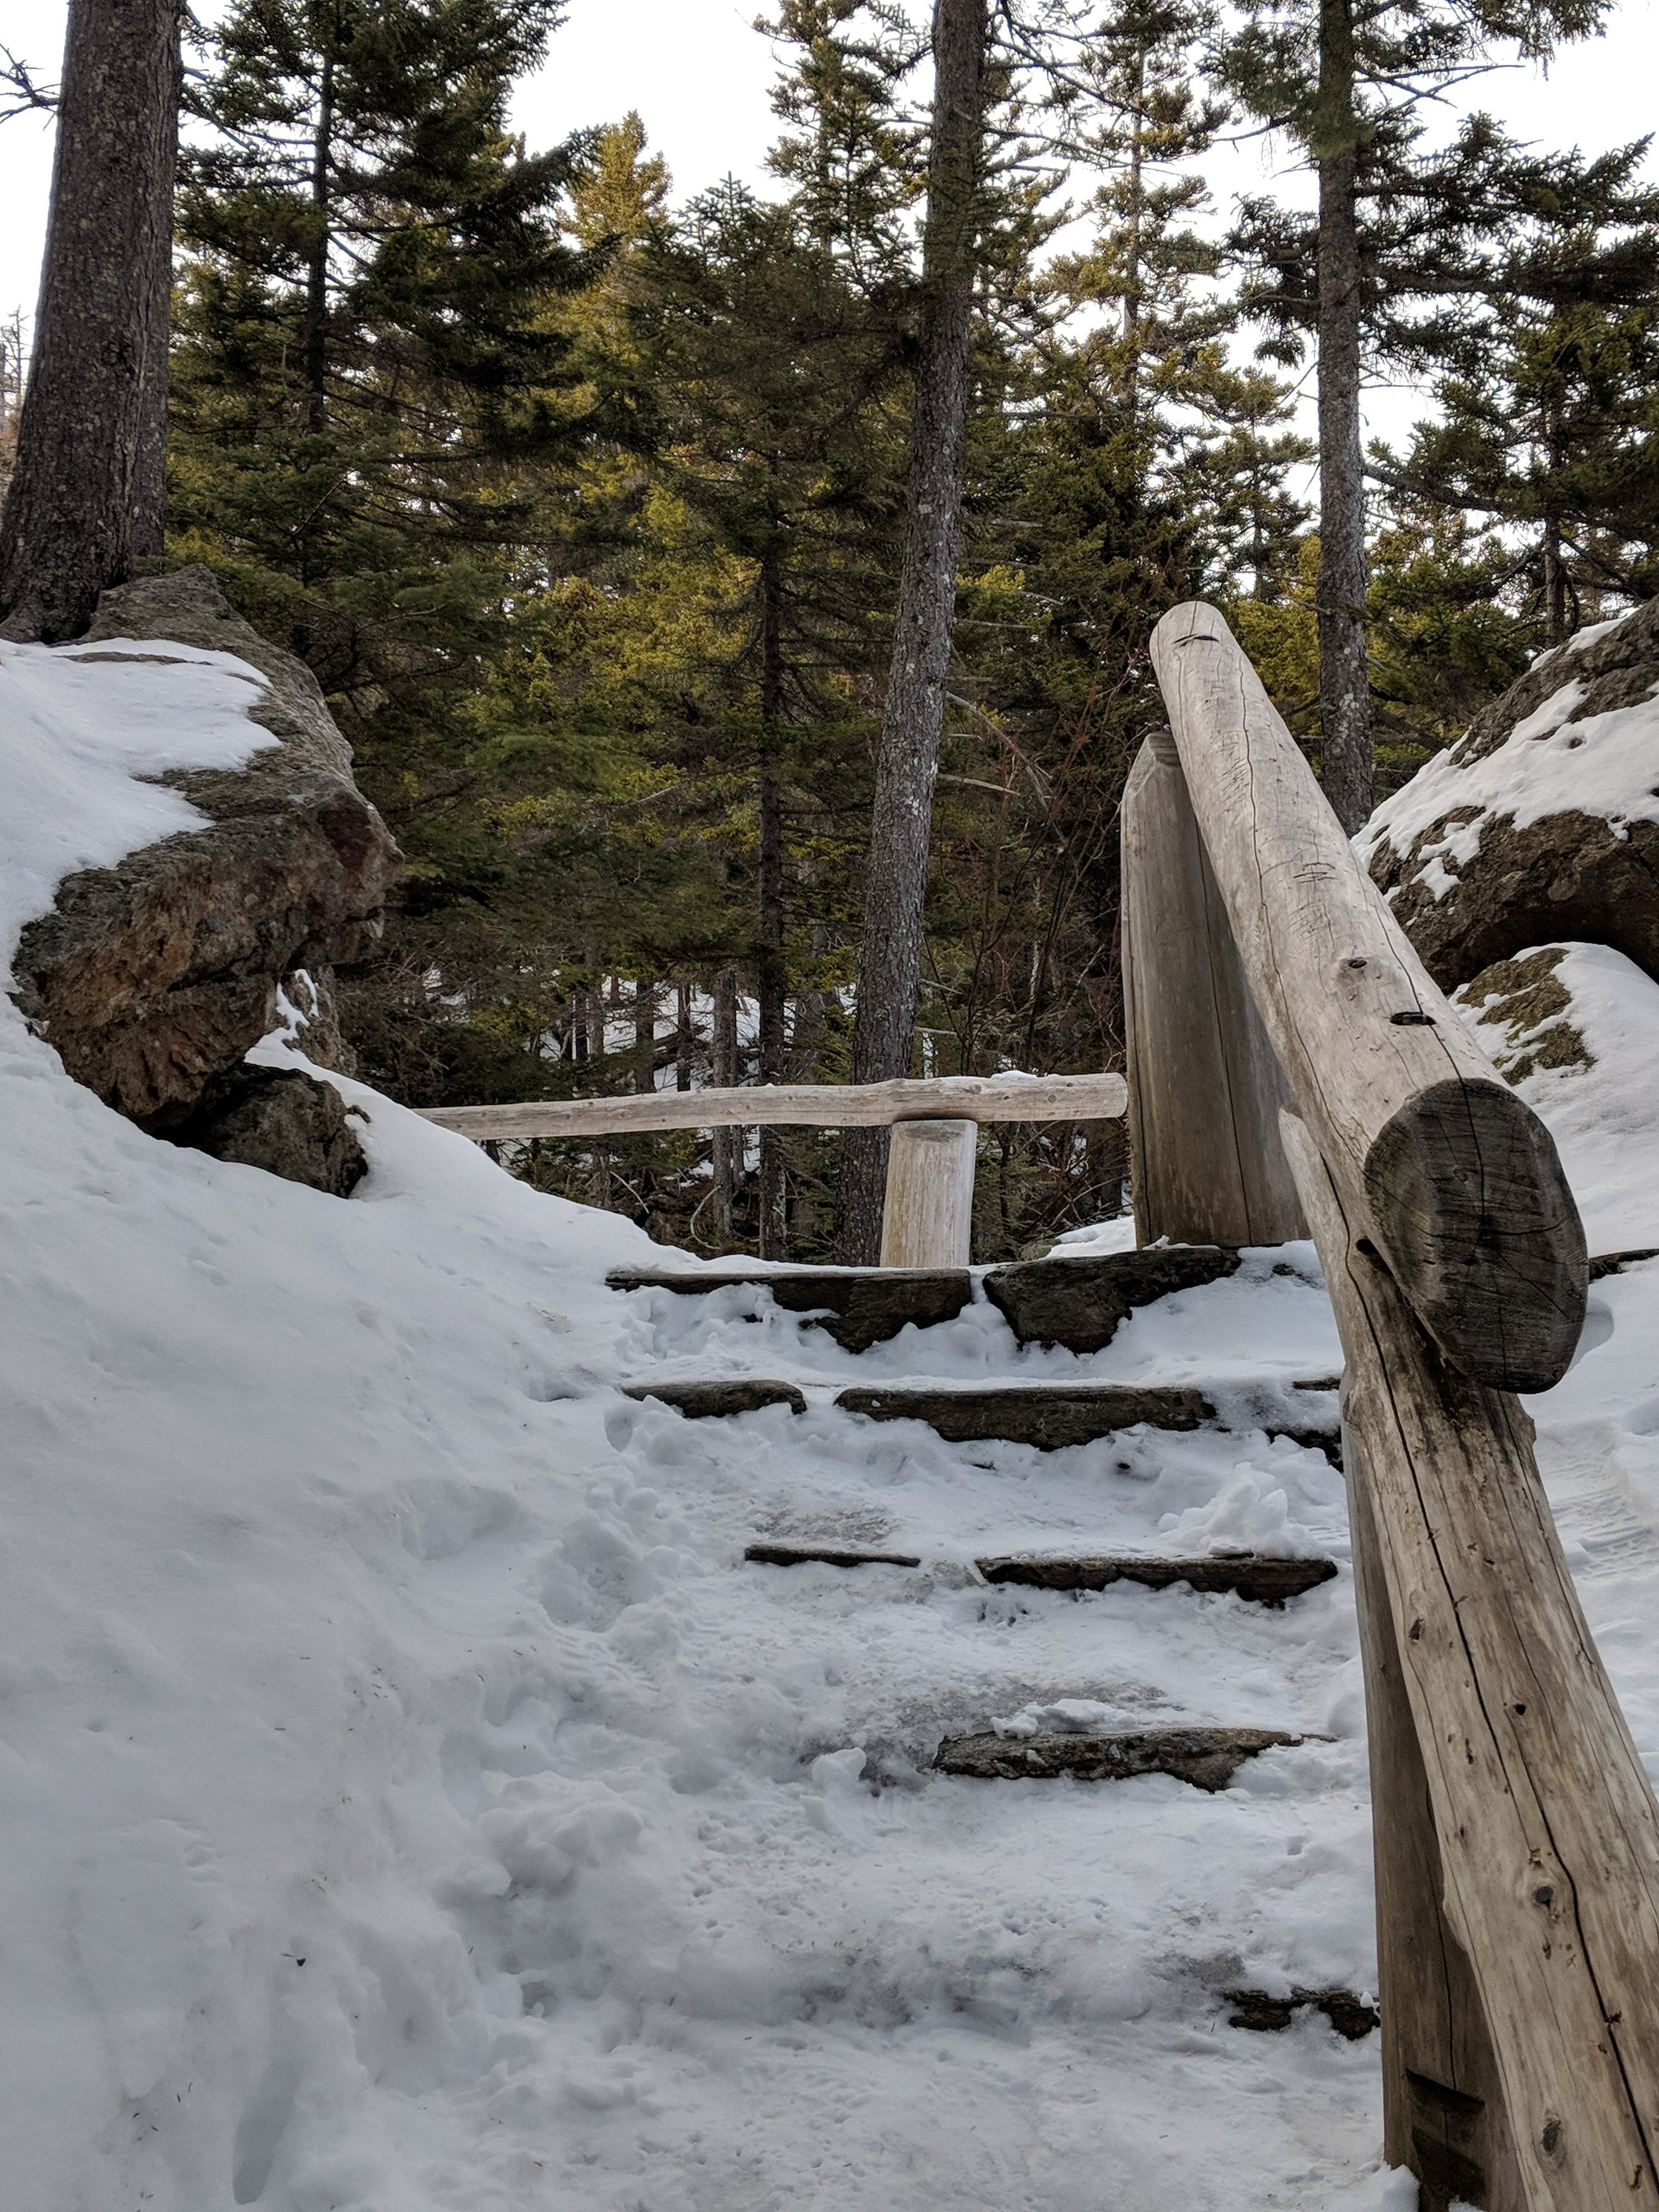 Stairs breaking through - The easiest section of stairs. Those log railings were the only way I made it there and back.